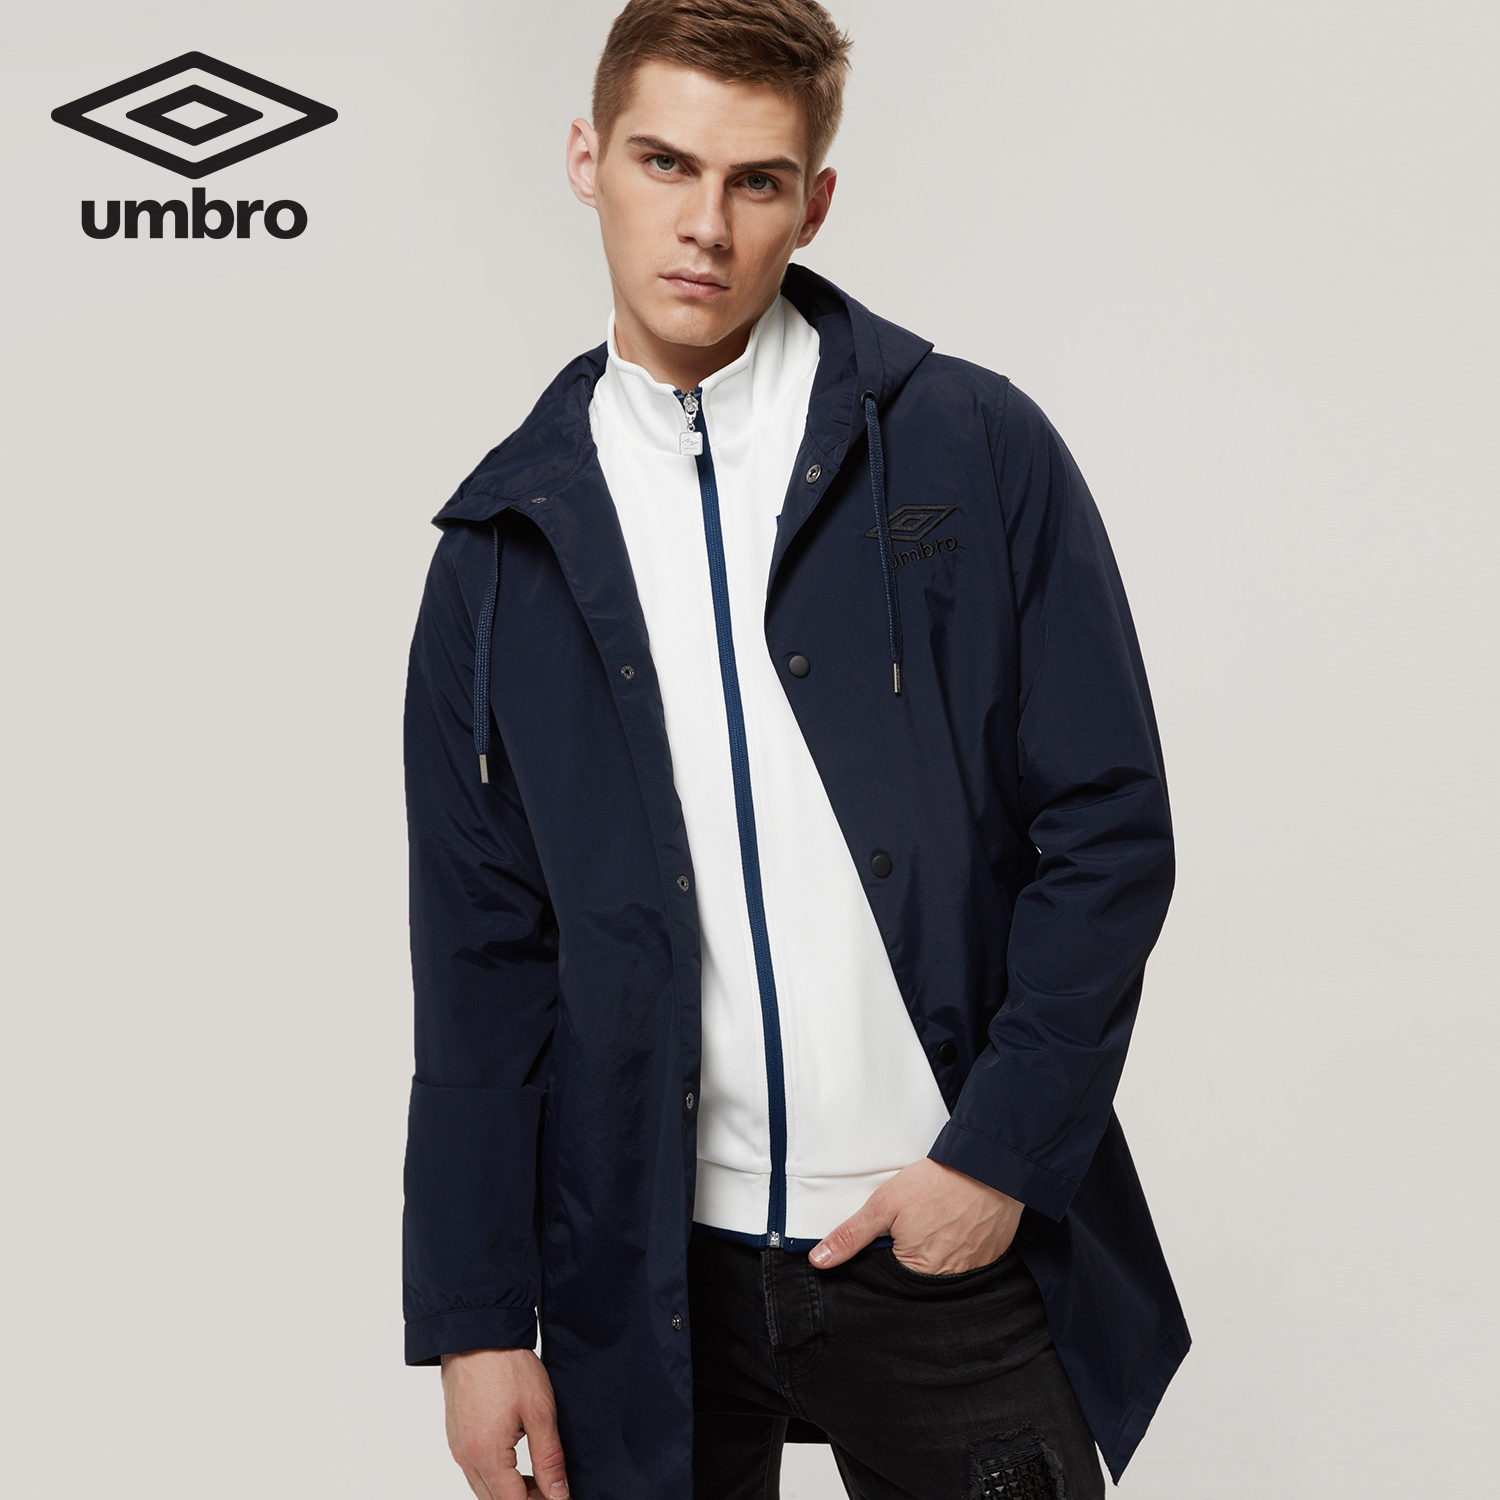 Umbro New Men Hooded Windproof Coat Knee Long Sleeve Sports Jacket Zip Up Clothing Sportswear UI173AP2223 sequin embroidered zip up jacket page 4